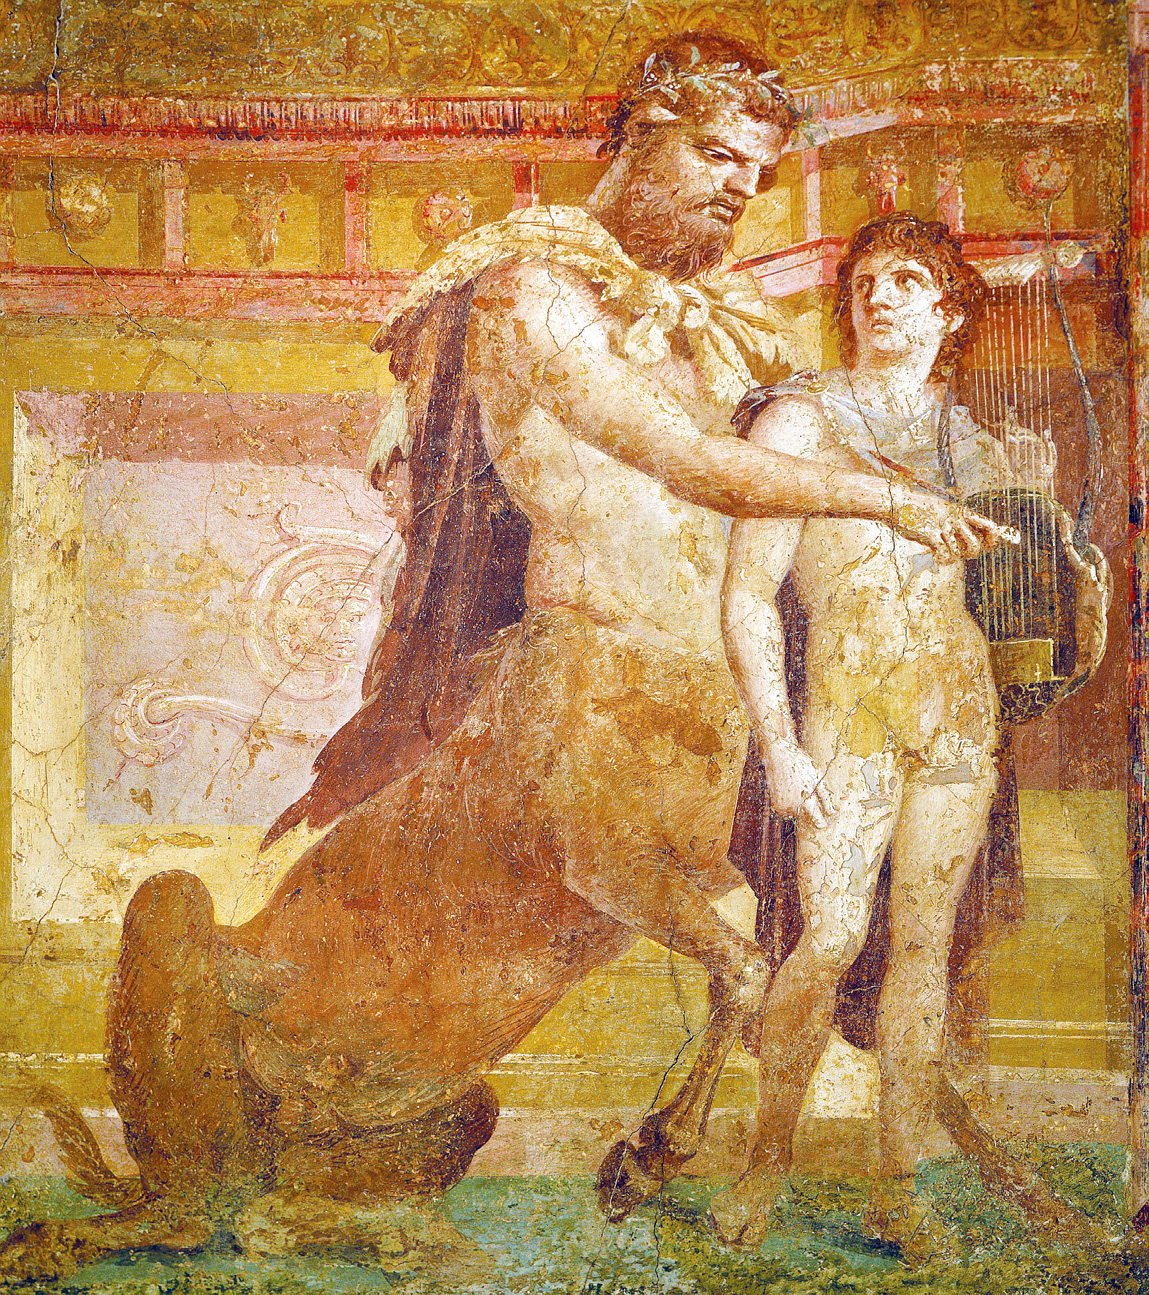 Chiron and Achilles depicted in a fresco in Herculaneum, Italy, first century. National Archaeological Museum, Naples, Italy.